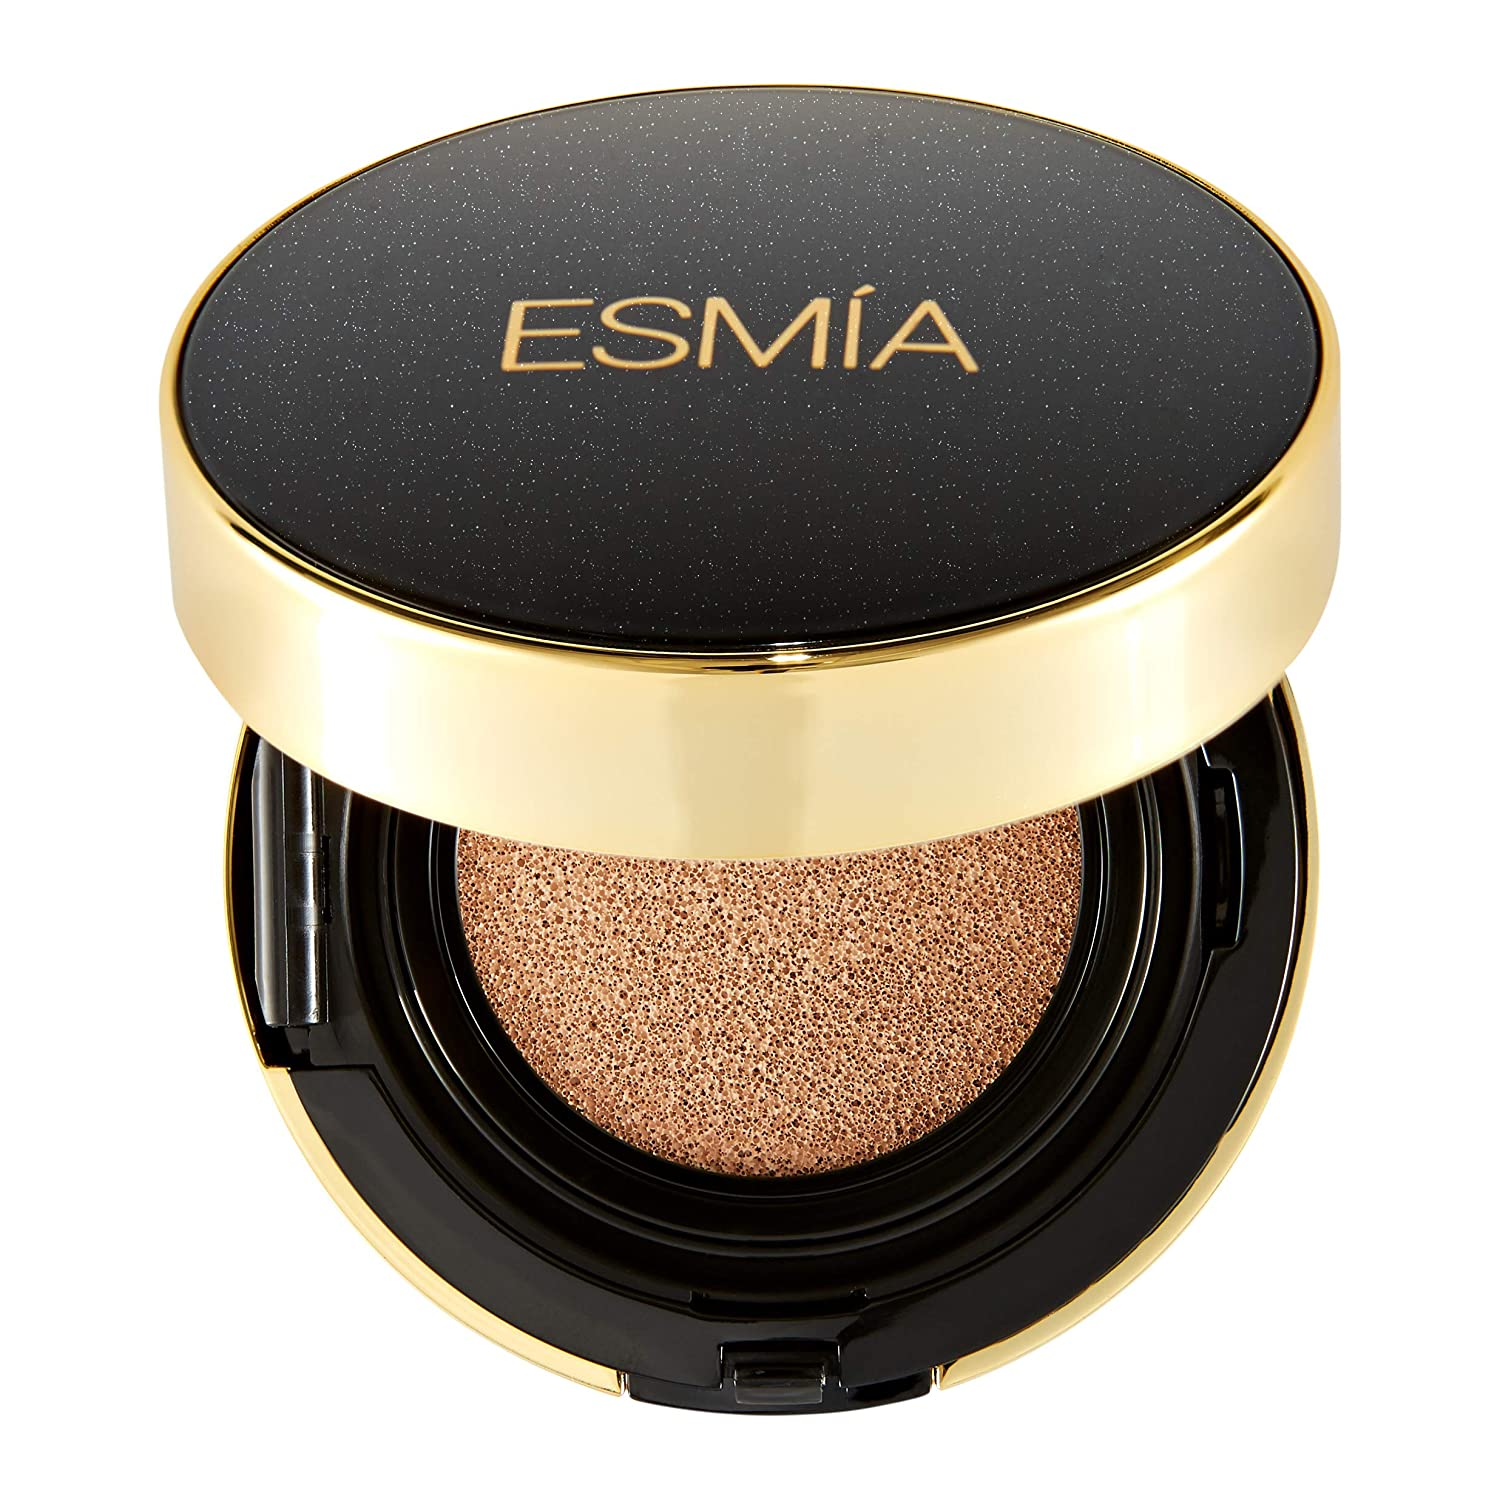 ESMIA Air Cushion Foundation, Long Lasting Moisturizing Brightening Foundation Cushion, Lightweight Even Skin Tone Base Flawless Finish BB Cream with UV Protection, All Skin Types (Caramel #31)